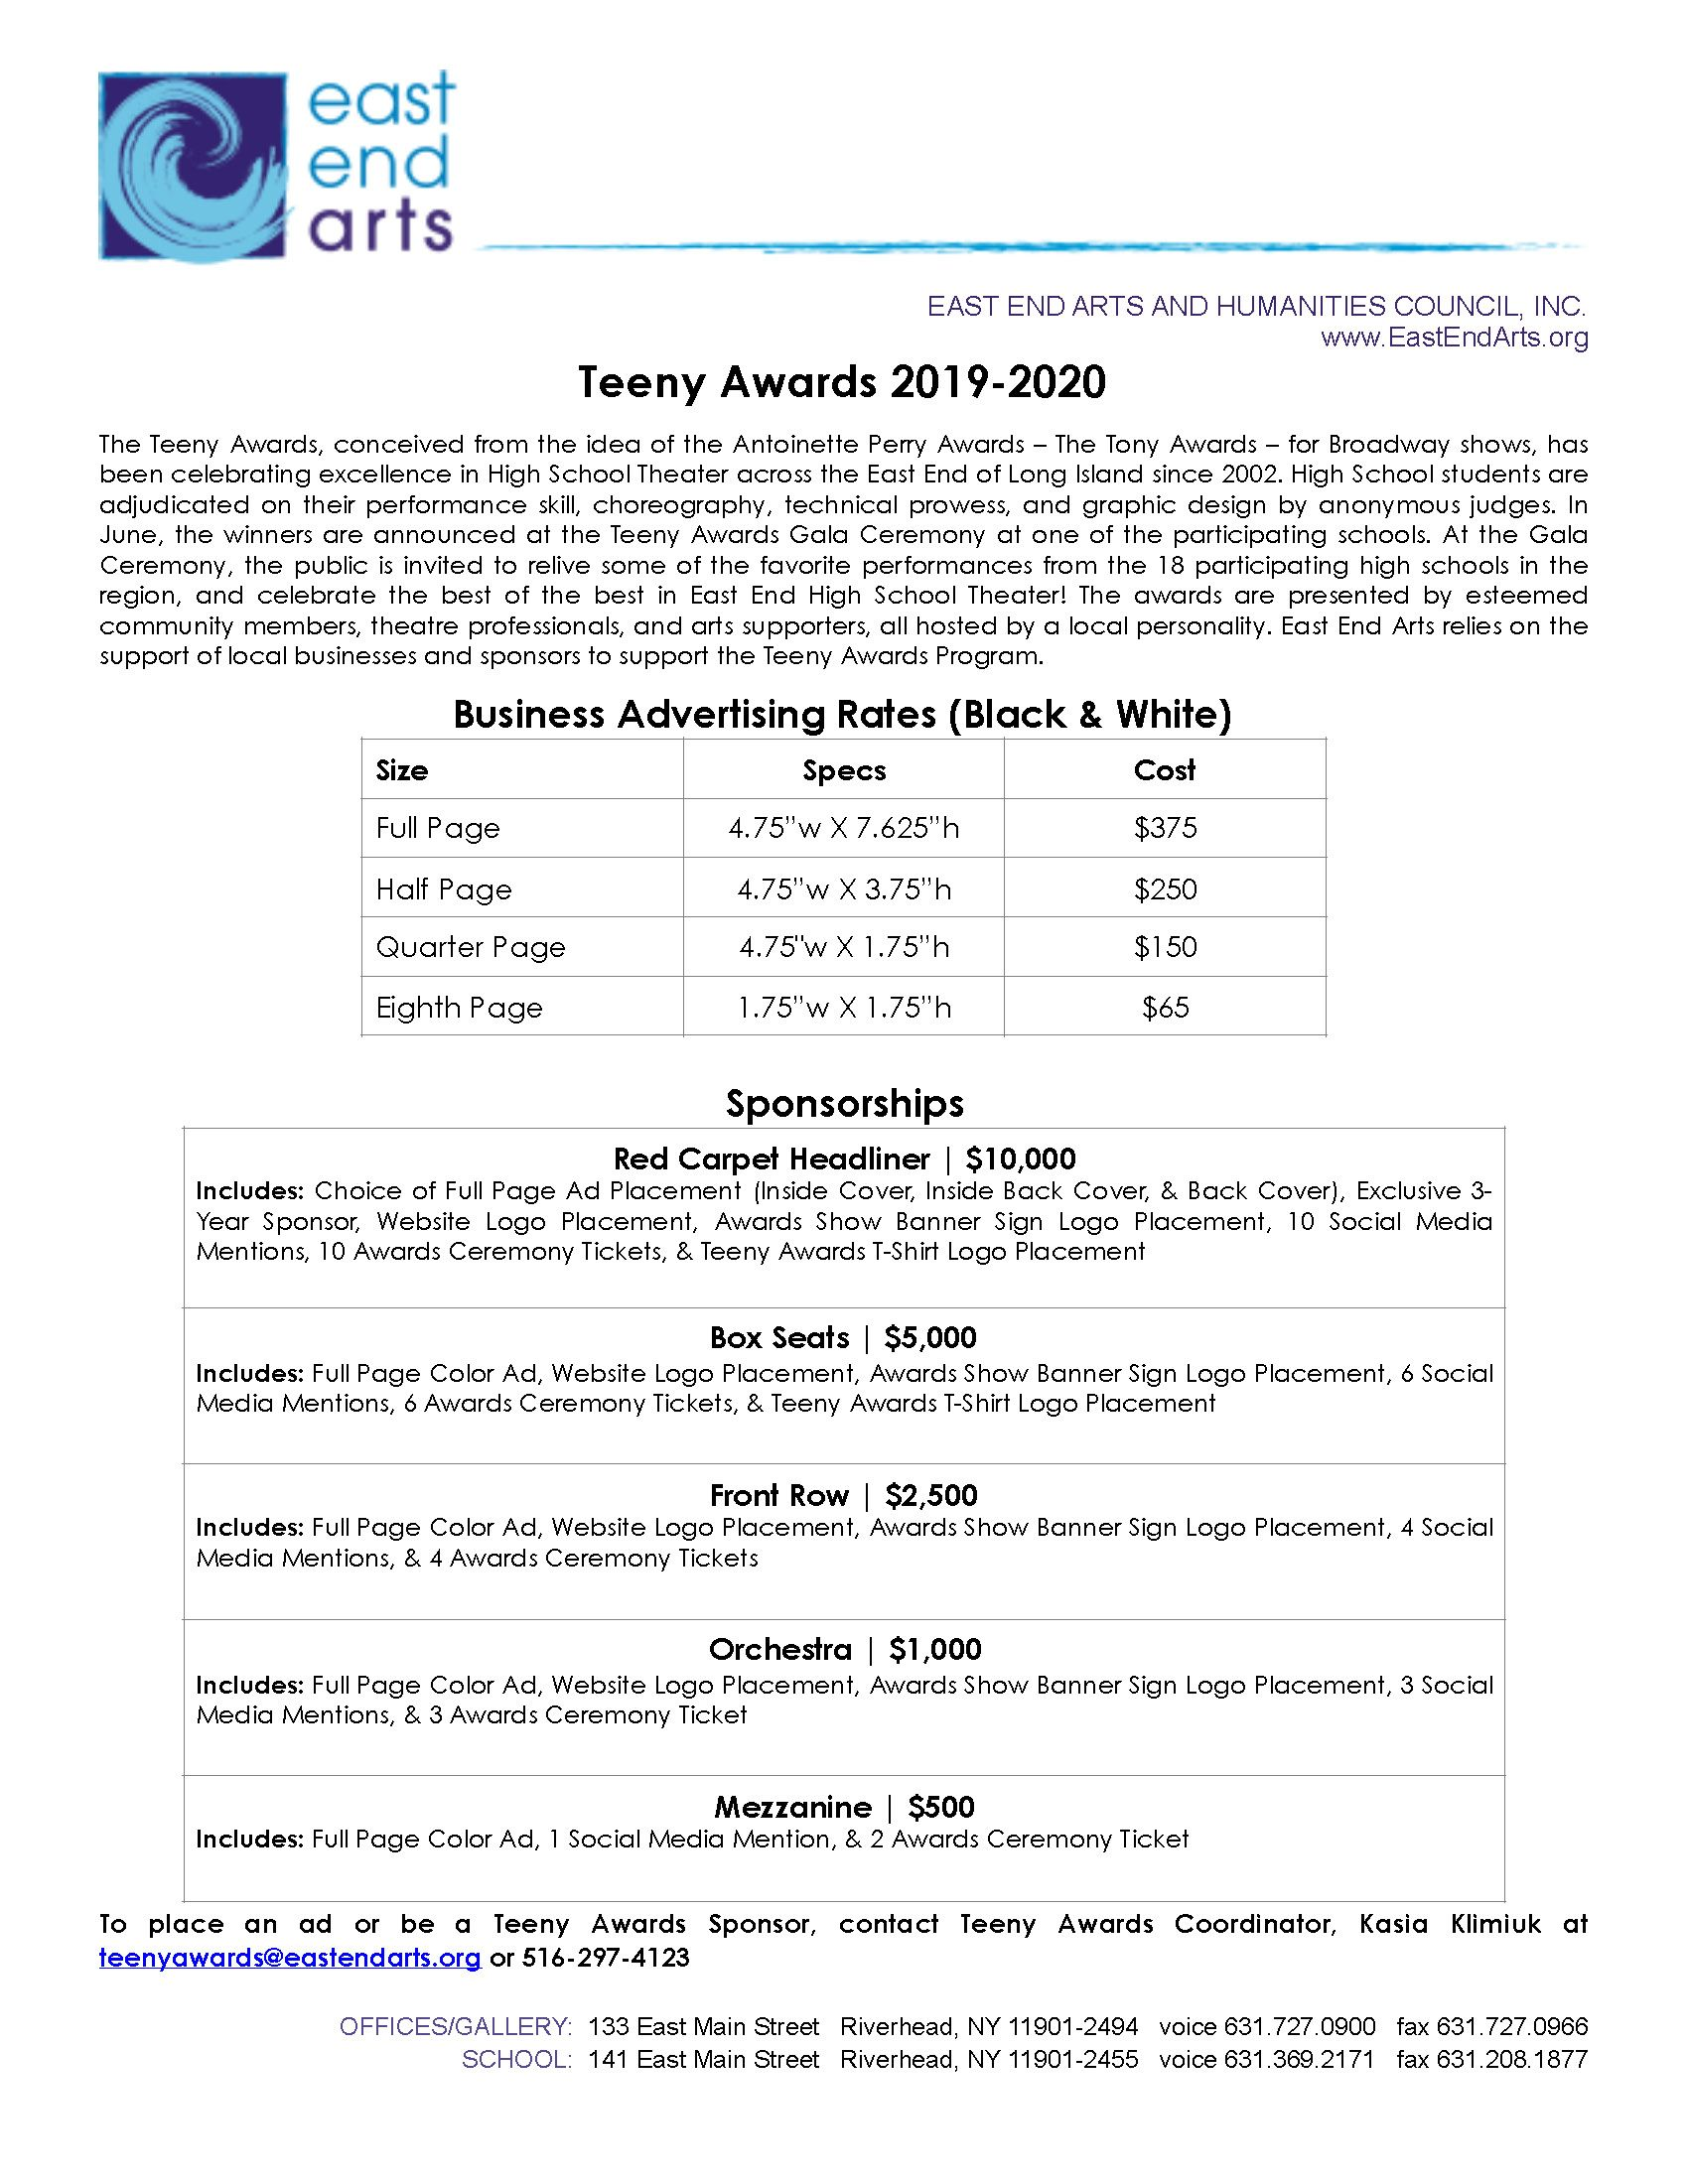 Click here to download a printable version of the sponsorship opportunities information and form>>>>